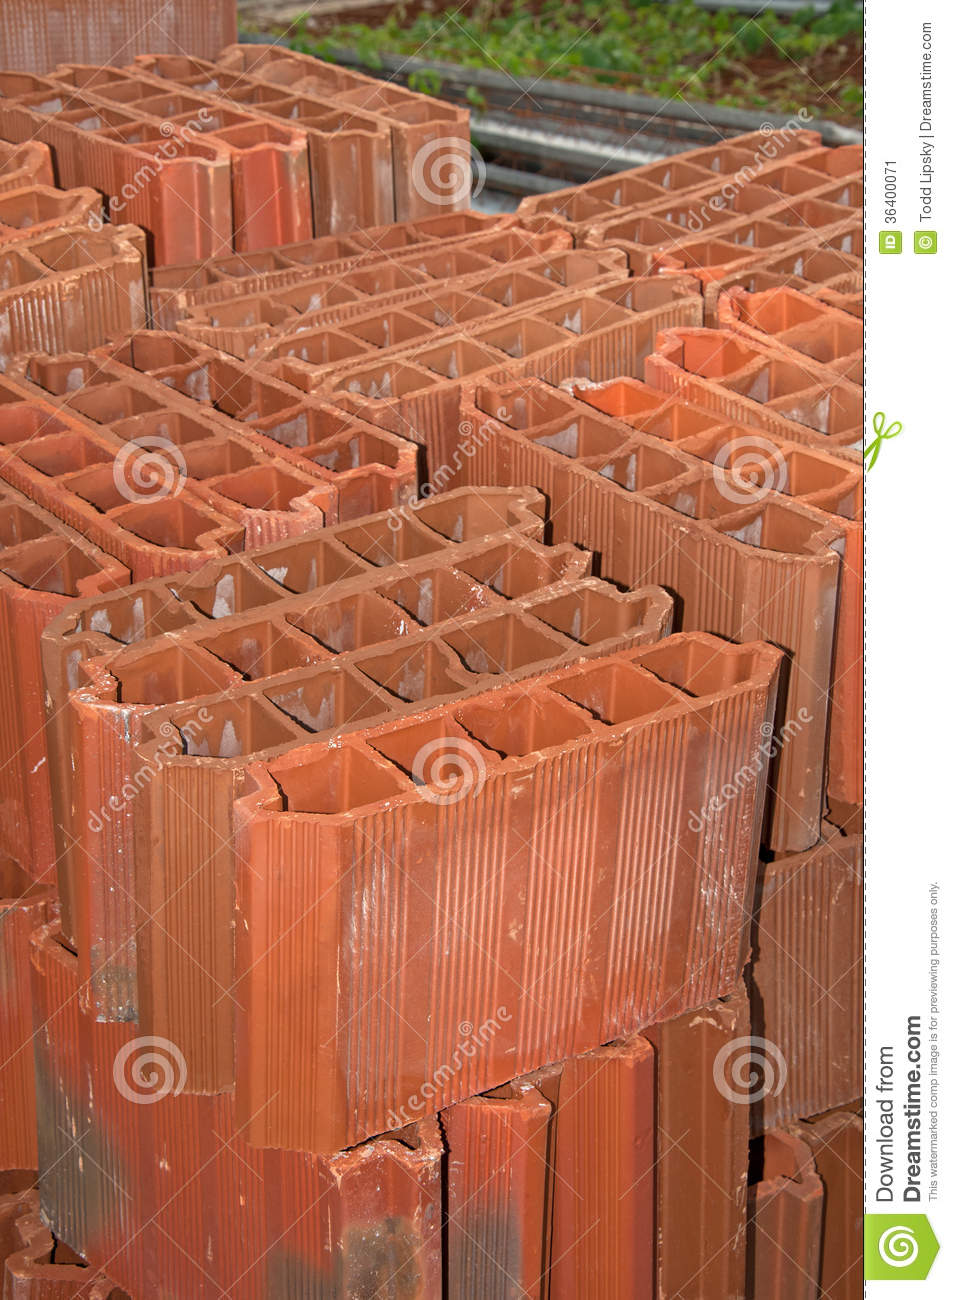 Red Clay Bricks : Stack of red clay brick stock image